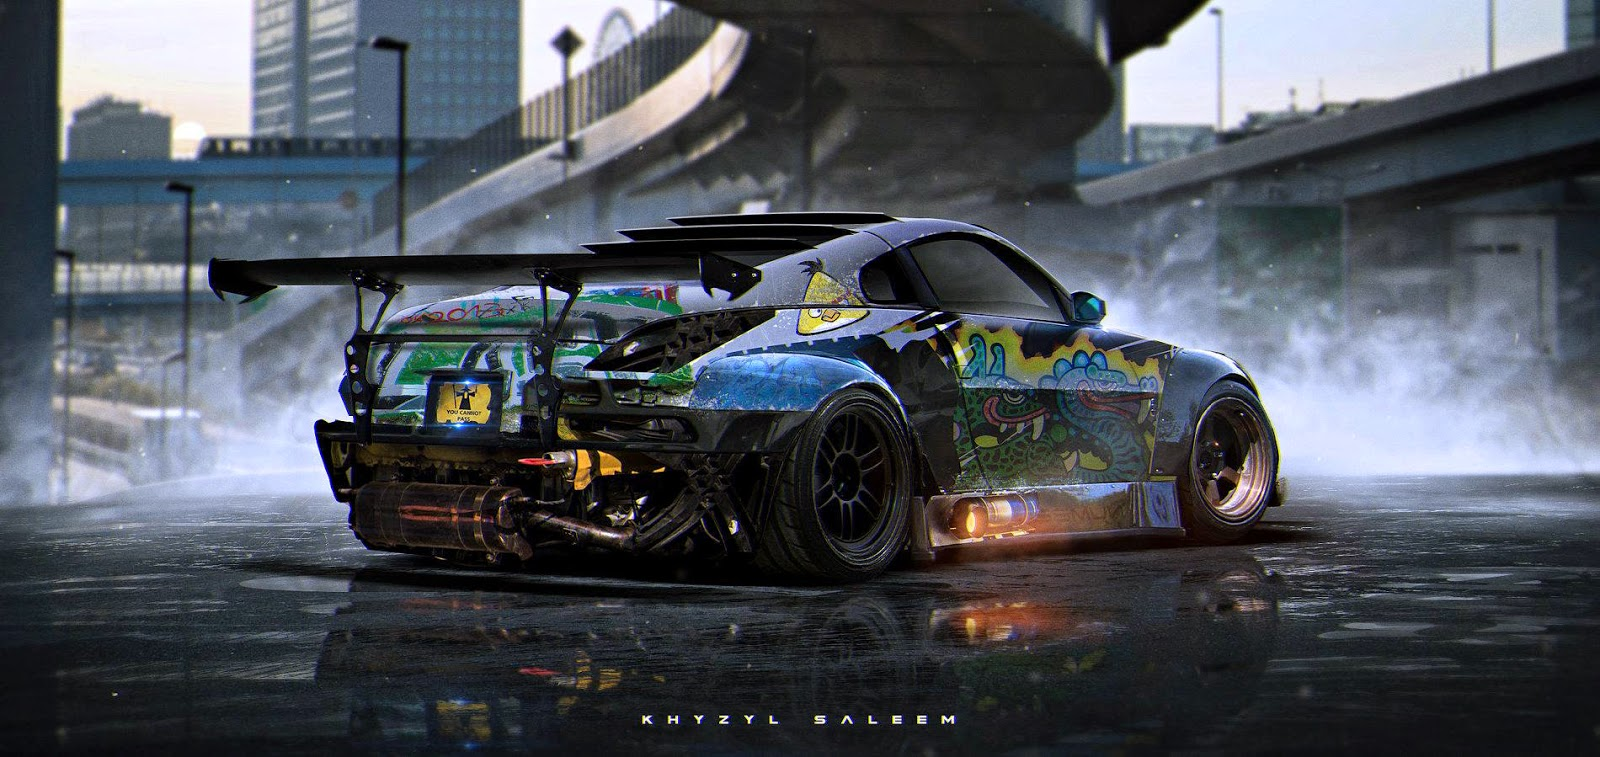 download sci-fiction concept car wallpaper made21 year old artist